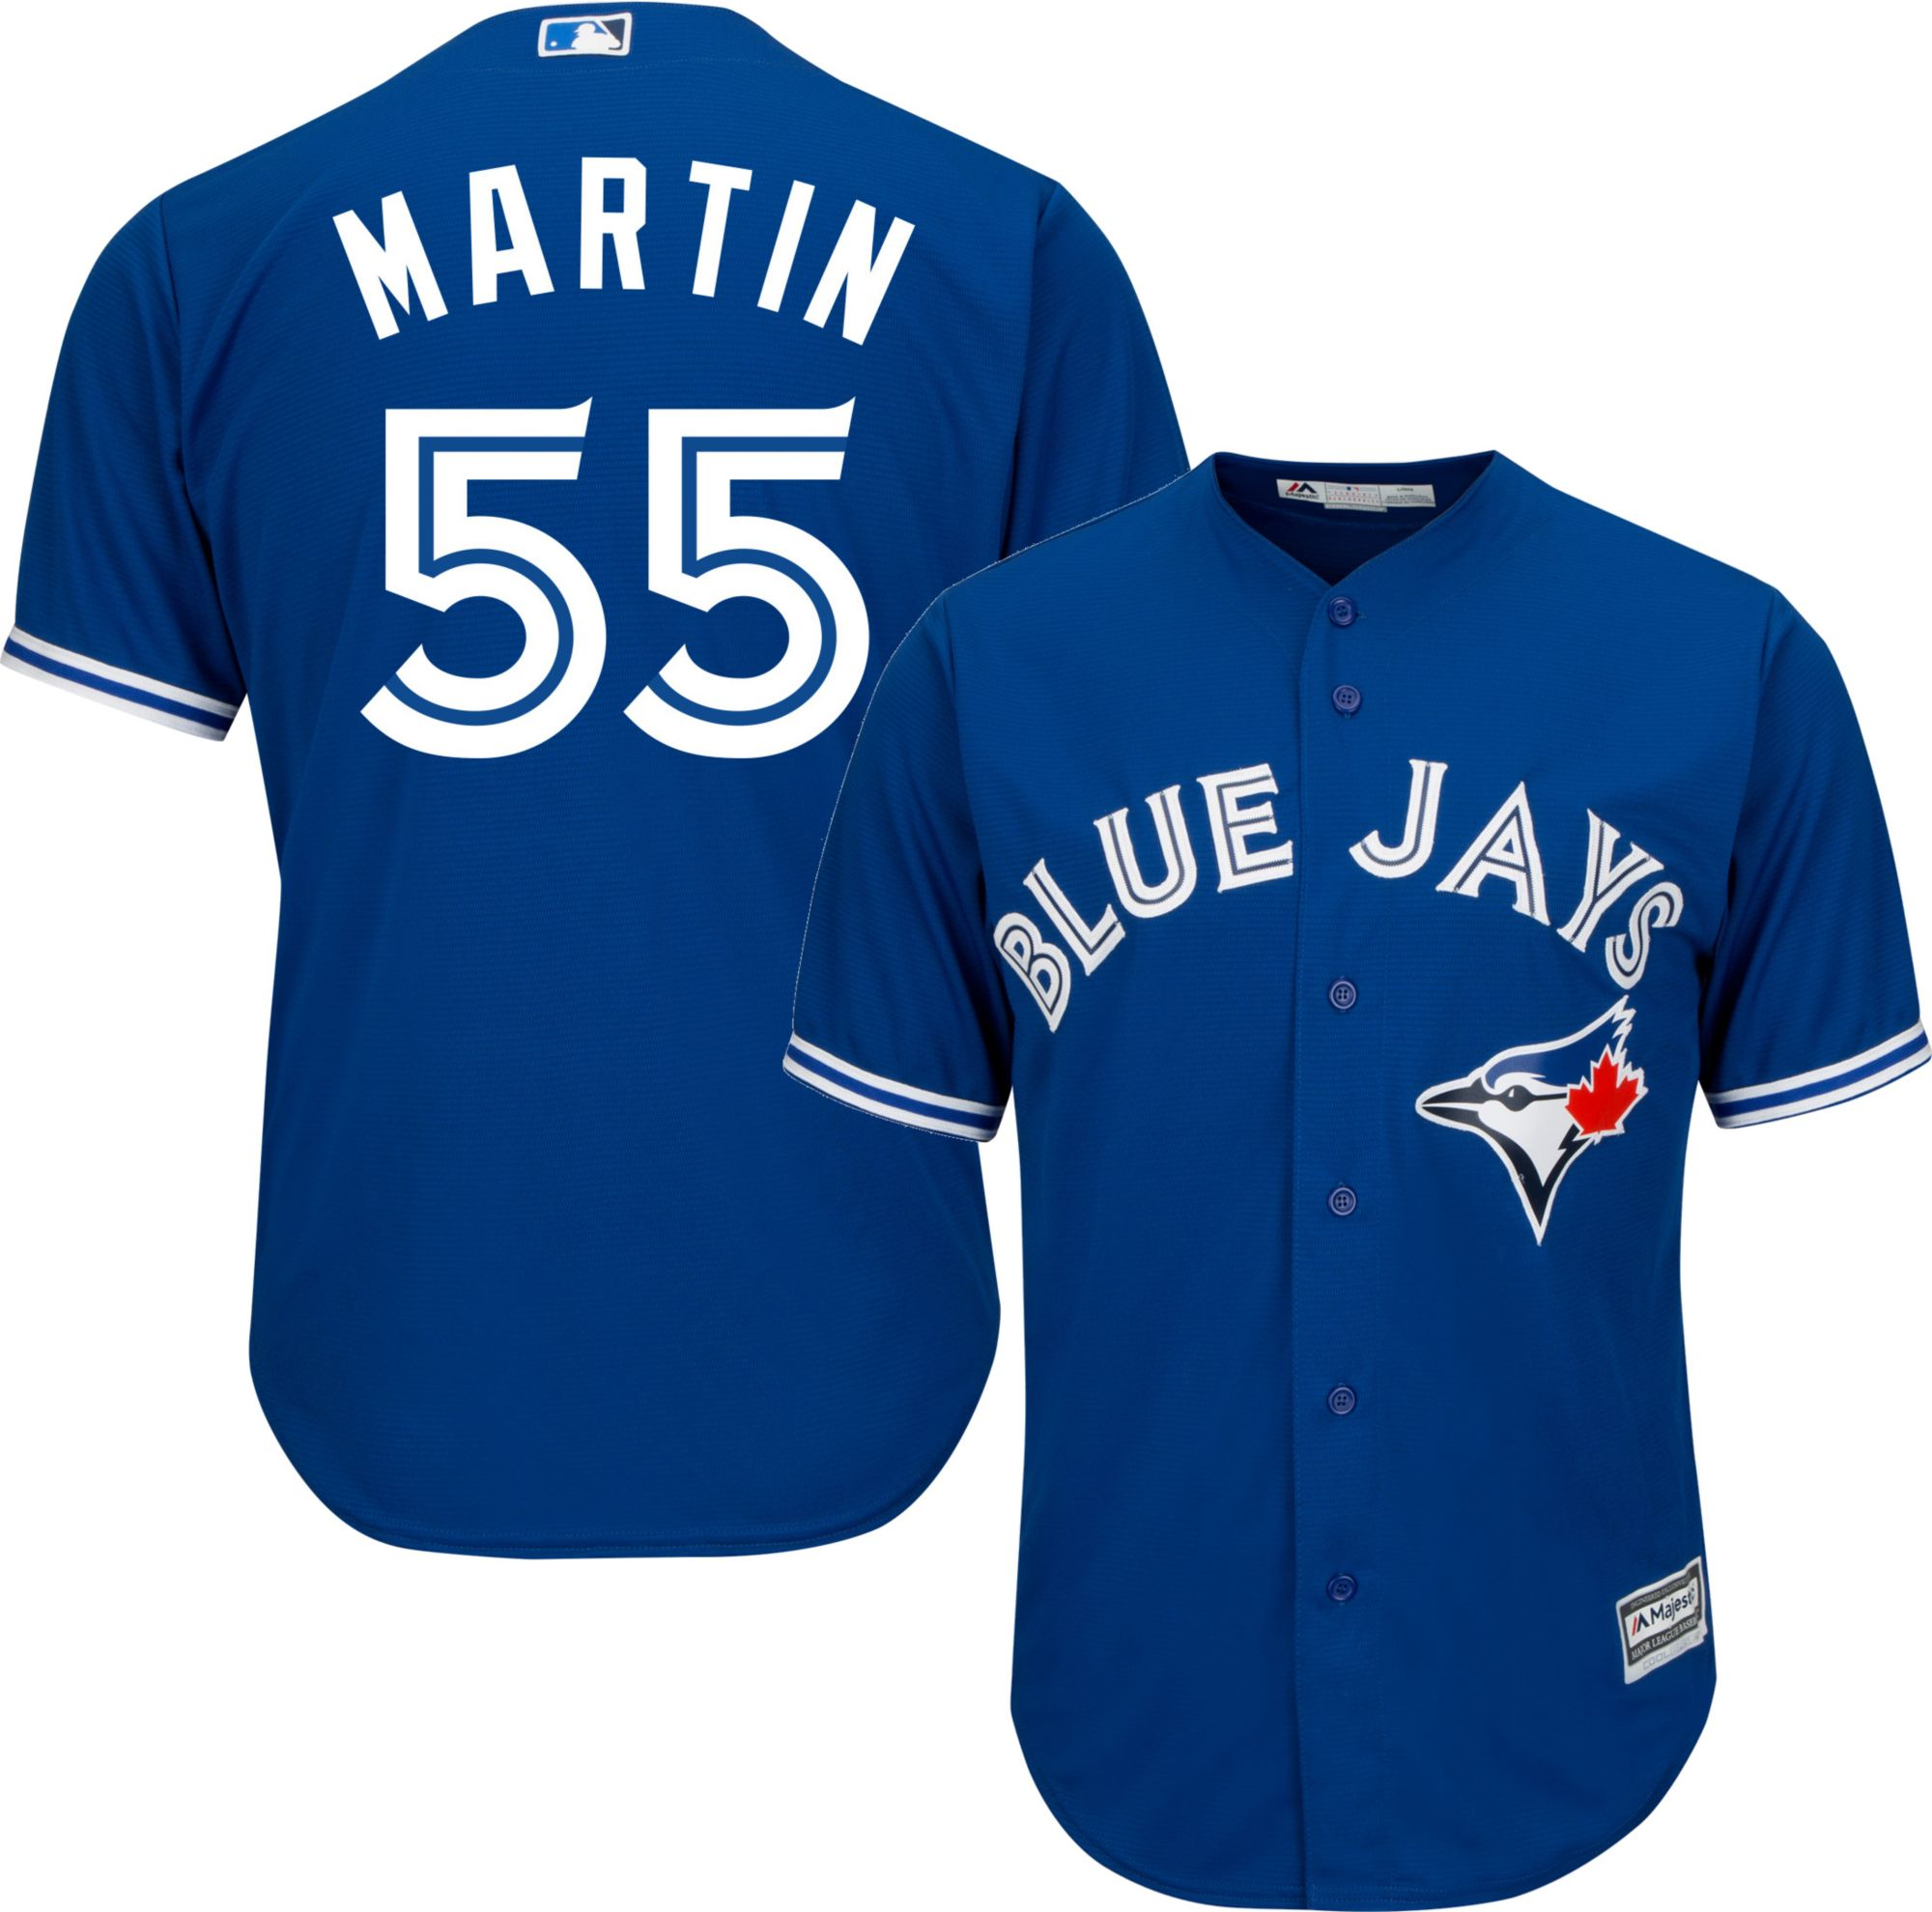 Majestic Men's Replica Toronto Blue Jays Russell Martin #55 Cool Base  Alternate Royal Jersey. 0:00. 0:00 / 0:00. noImageFound ???